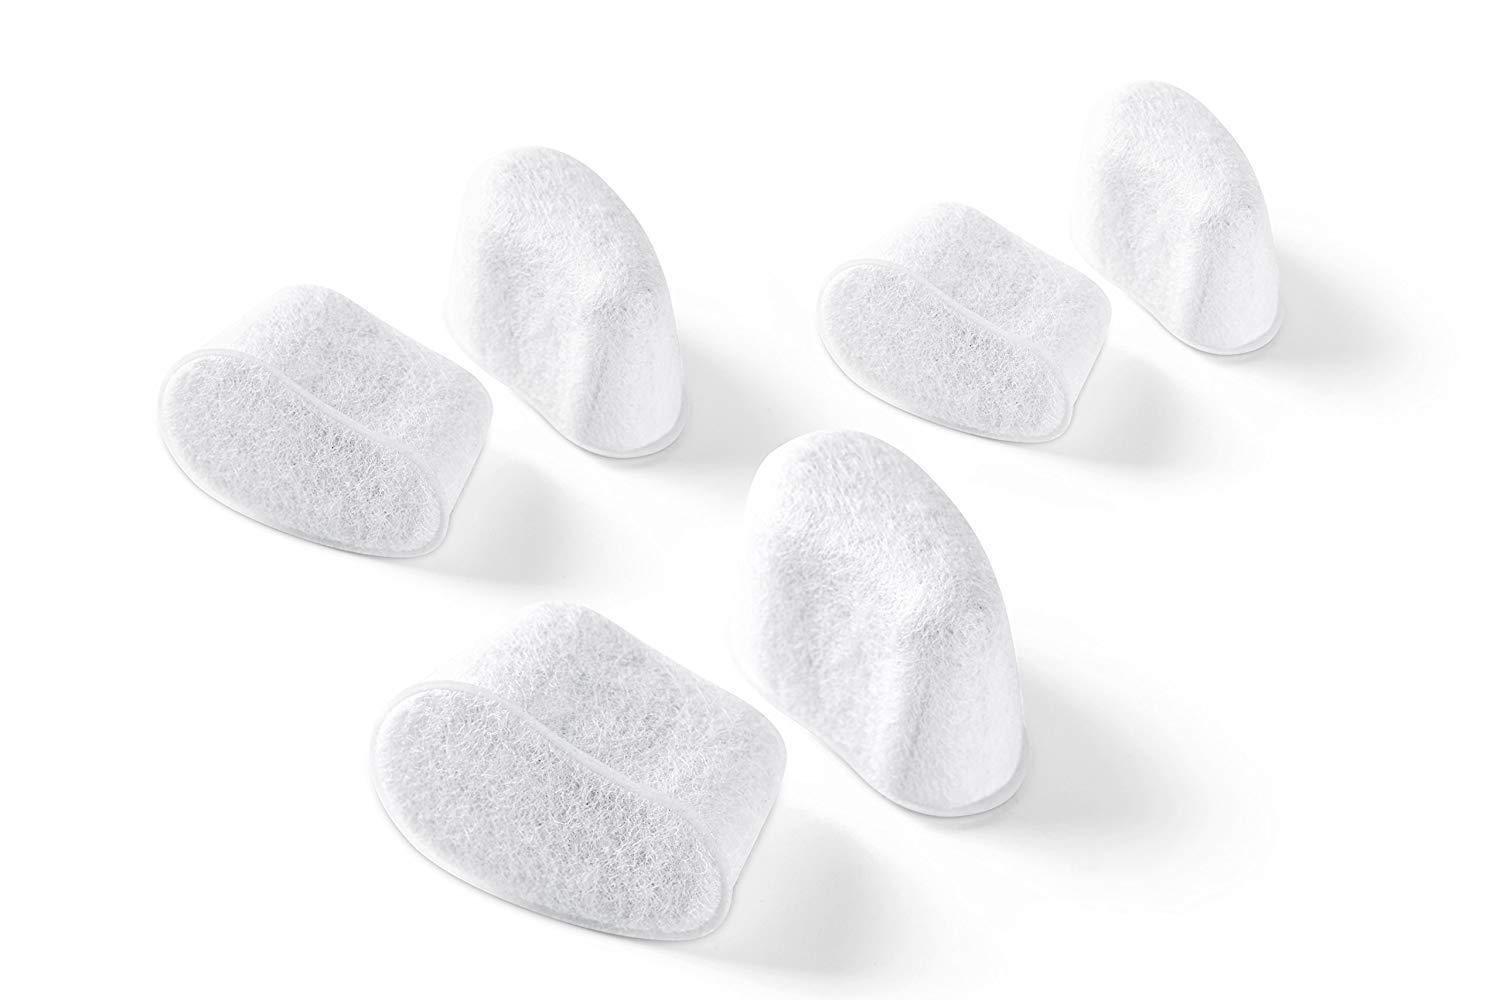 6-Pack Replacement Charcoal Water Filters for Krups Coffee Maker